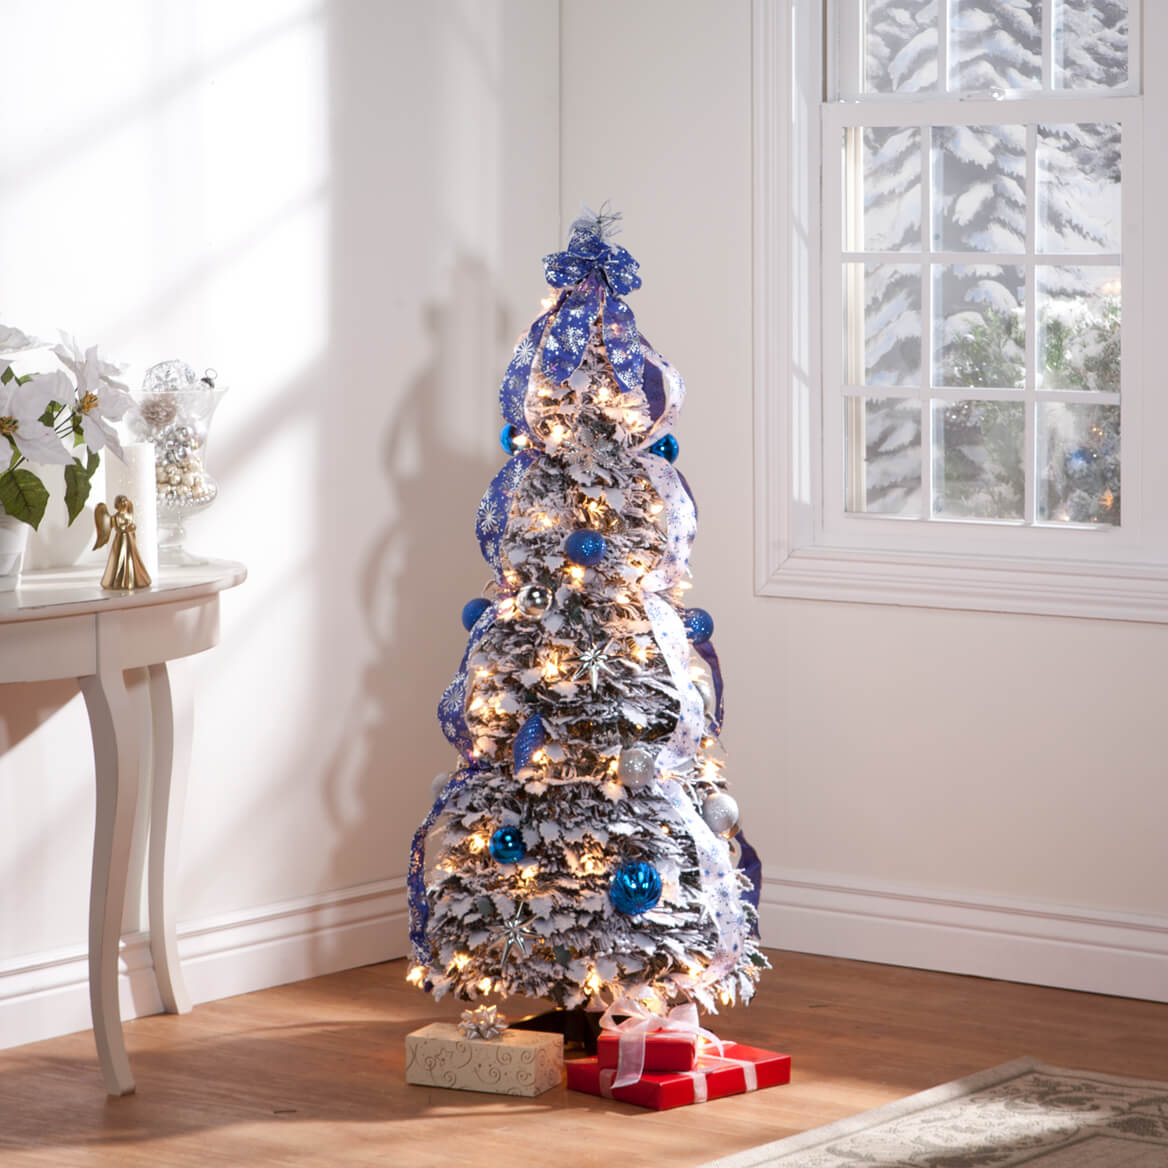 3 read reviews write a review read qa - Fully Decorated Christmas Tree